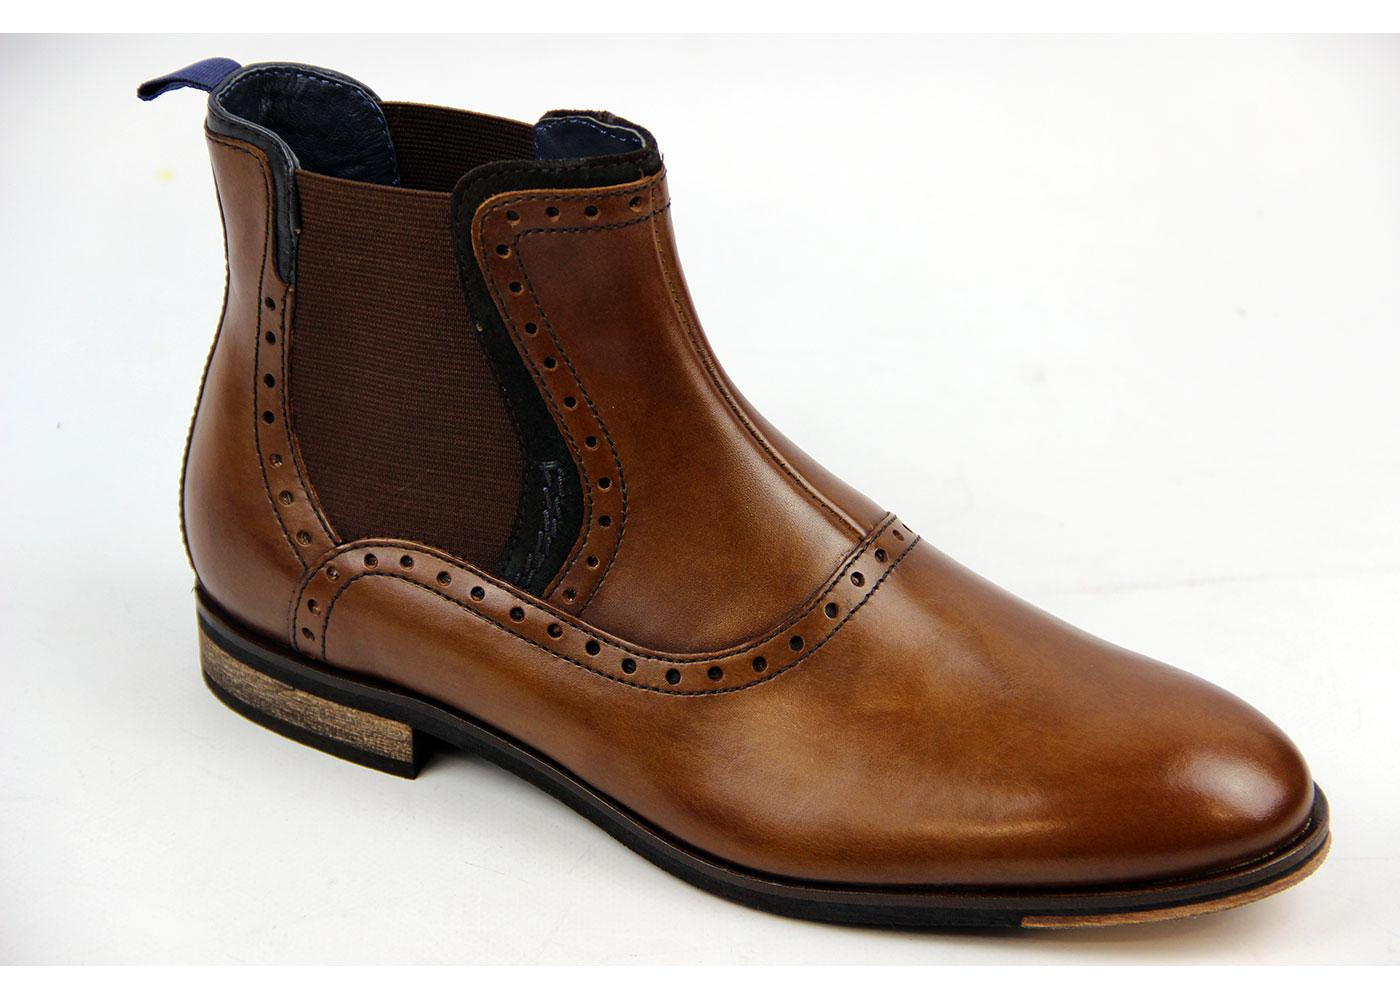 Baldwin GOODWIN SMITH Mod Brogue Chelsea Boots (T)